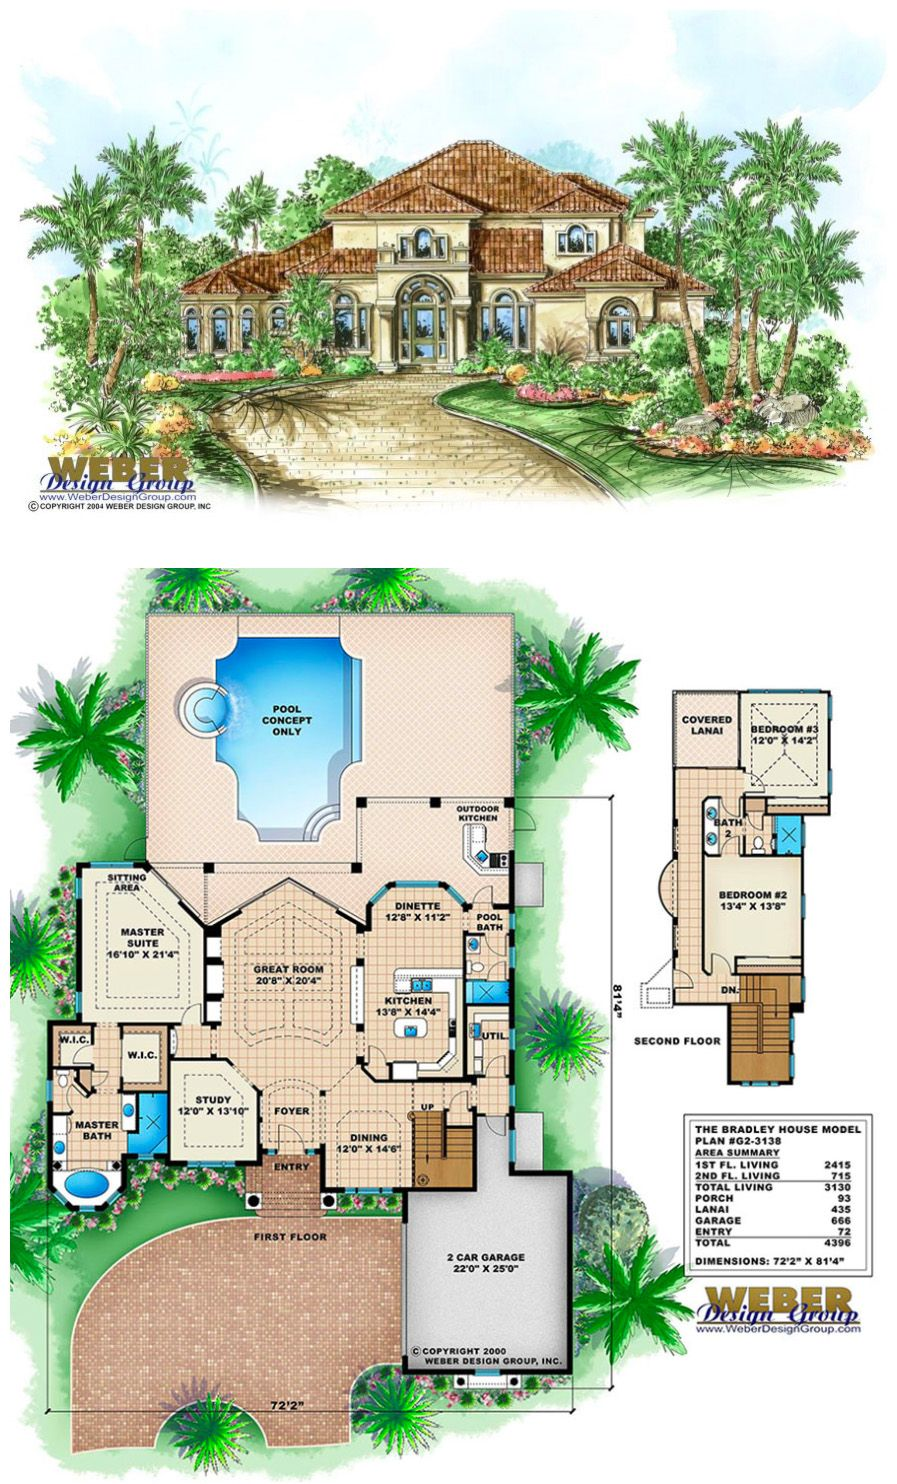 Mediterranean House Plan 2 Story Coastal Mediterranean Floor Plan Mediterranean Floor Plans Beach House Plans Mediterranean House Plans